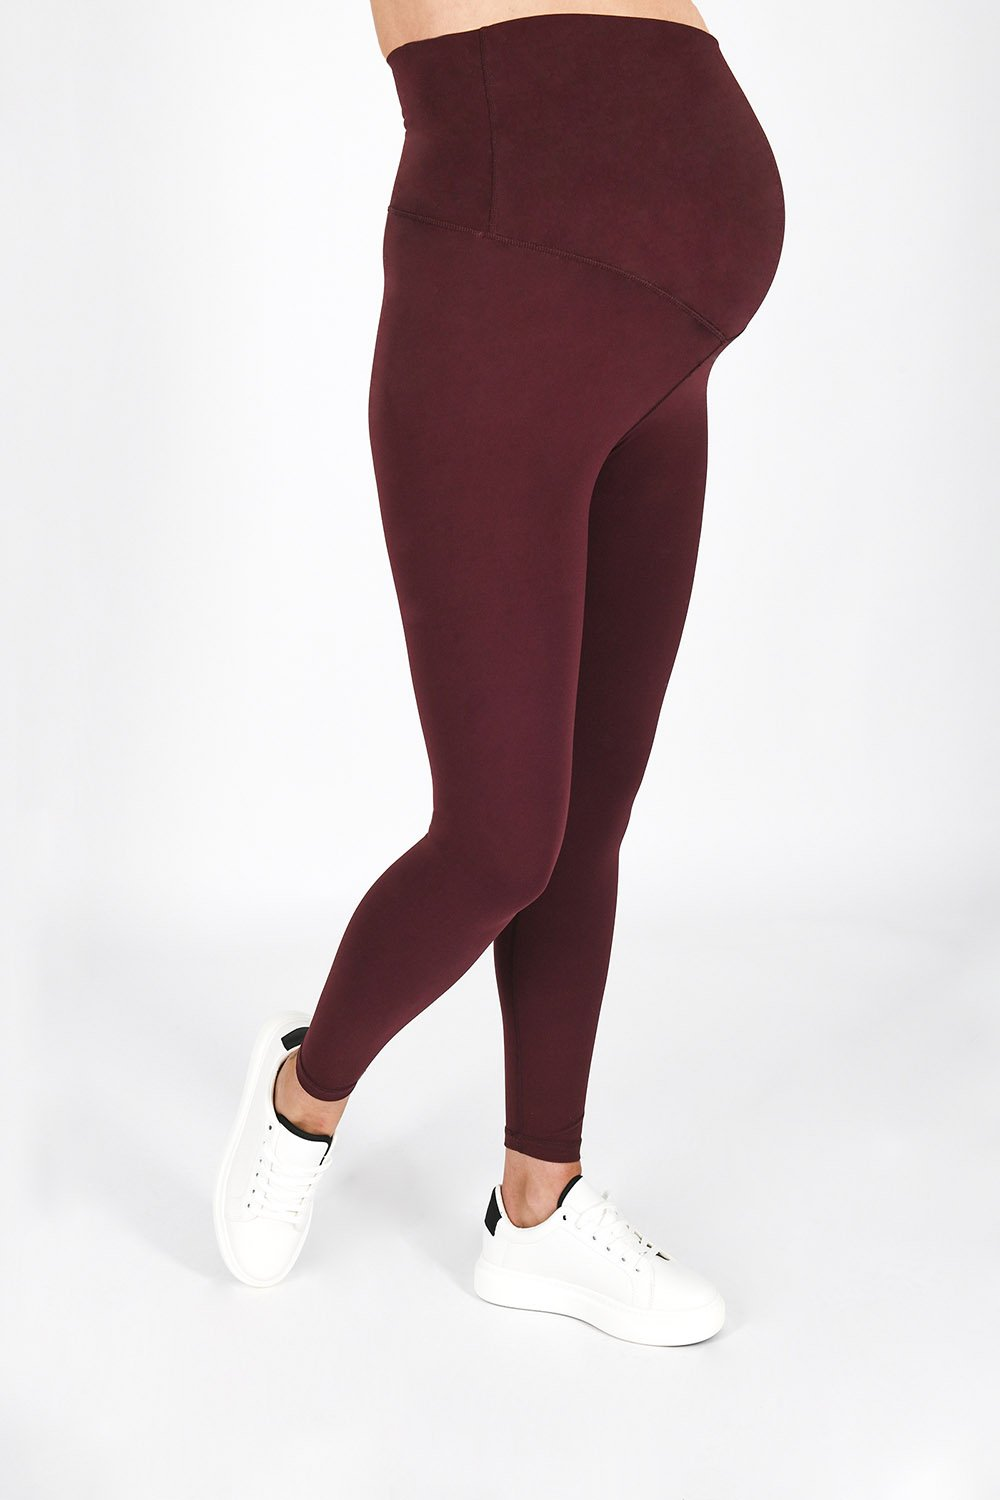 Revitalise 7/8 Winter Berry Maternity Sports Leggings